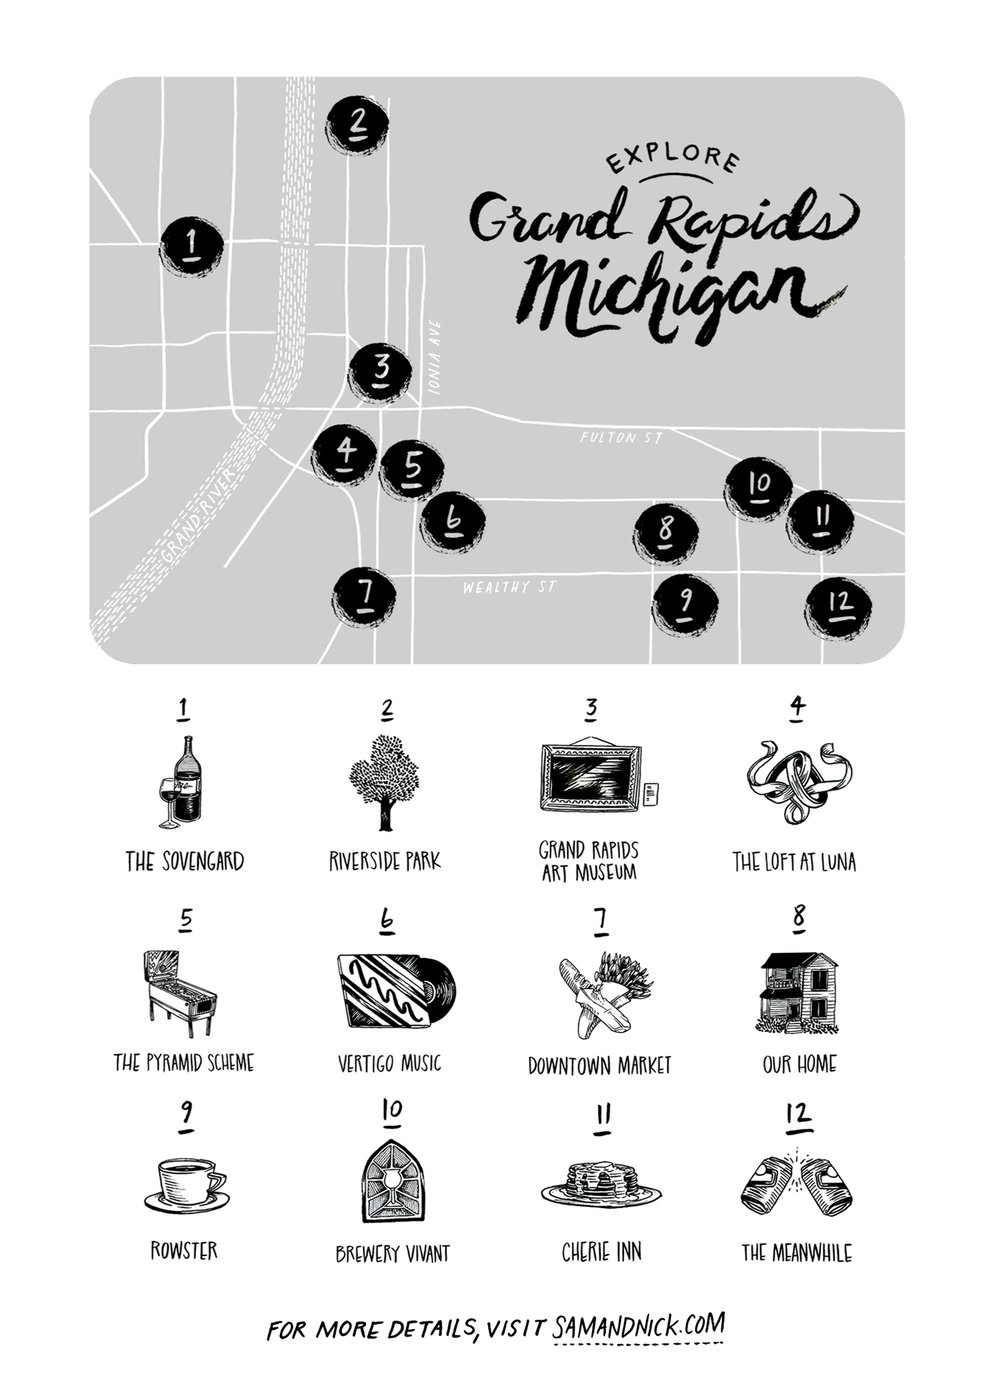 Map Key - Map created by our friend, Lucy Engelman.1. The Sovengard443 Bridge St. NWBiergarten and kitchen featuring hyper-local, Scandinavian-inspired cuisine.2. Riverside Park2001 Monroe Ave.NWA peaceful, tree-lined park along the Grand River.3. Grand Rapids Art Museum101 Monroe Center St NWCollections range from Renaissance to Modern Art.4. The Loft at Luna64 Ionia Ave. SW #100Our wedding venue!5. The Pyramid Scheme68 Commerce Ave. SWDrinks, pinball and live music.6. Vertigo Music129 Division Ave SOur local record shop.7. Downtown Market435 Ionia Ave SWA produce market, a bakery, restaurants and much more.8. Our Home9. Rowster632 Wealthy St SEThe best coffee in town.10. Brewery Vivant925 Cherry St SEIf you visit one microbrewery in